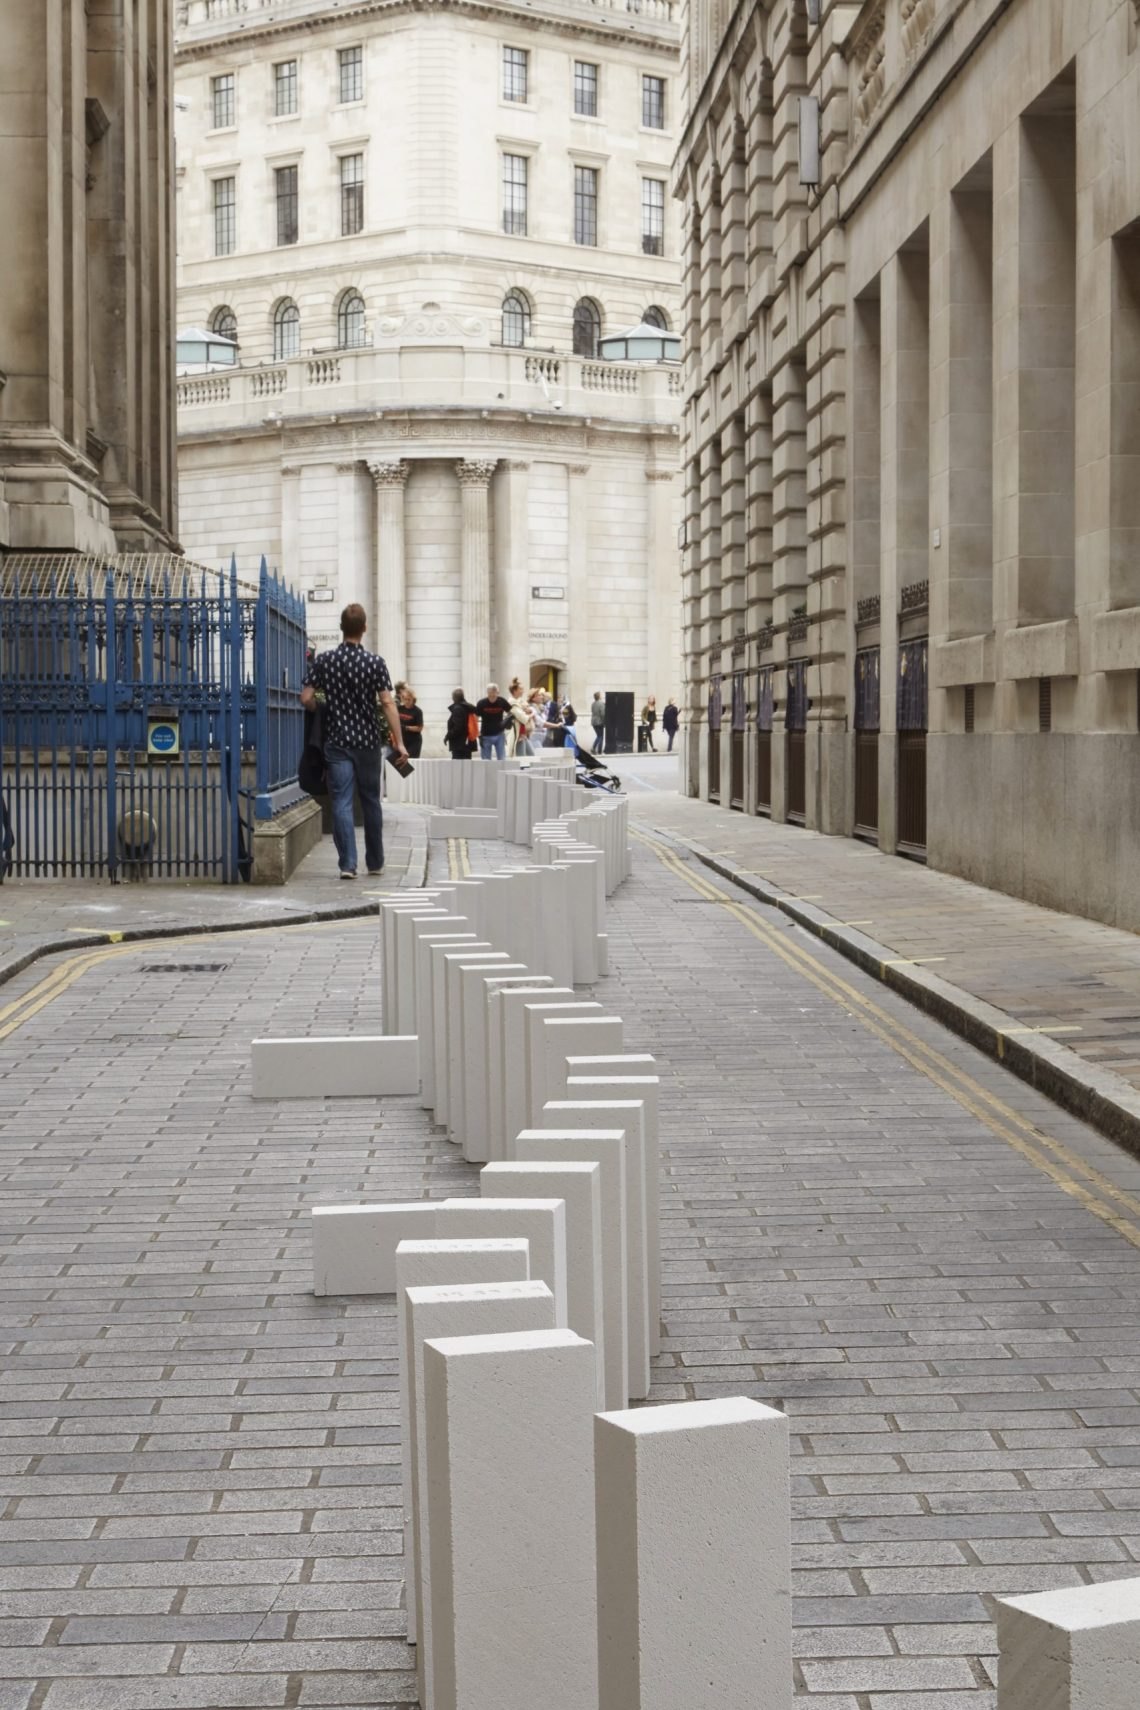 dominoes-station-house-opera-an-artsadmin-project-londons-burning-a-festival-of-arts-and-ideas-for-great-fire-350-produced-by-artichoke-photo-by-matthew-andrews-11